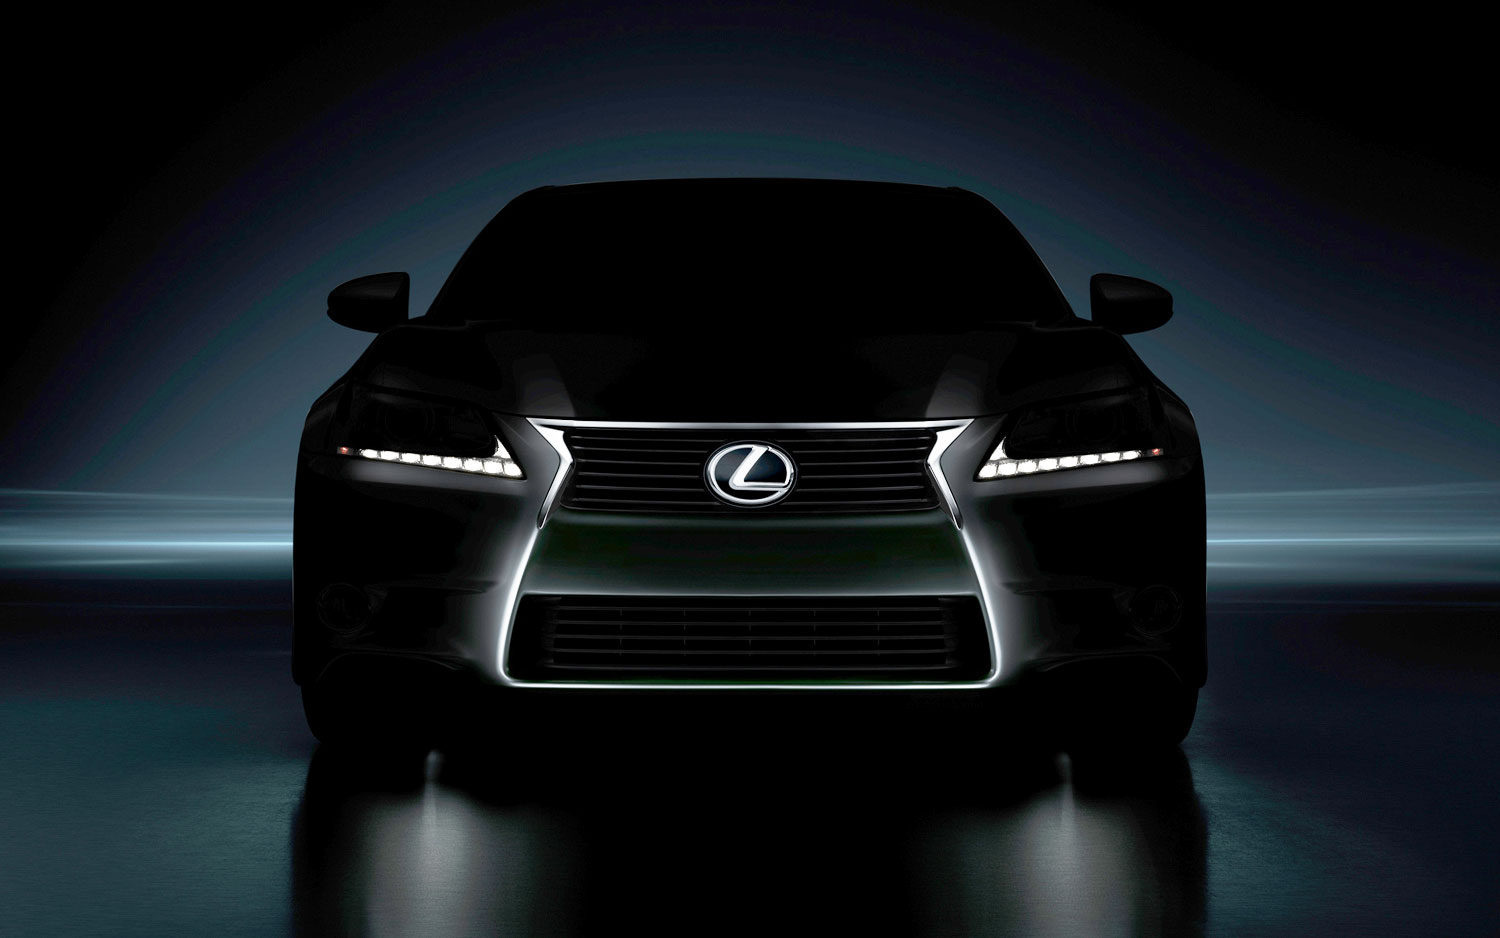 2013 Lexus GS Front Teaser Lightened1